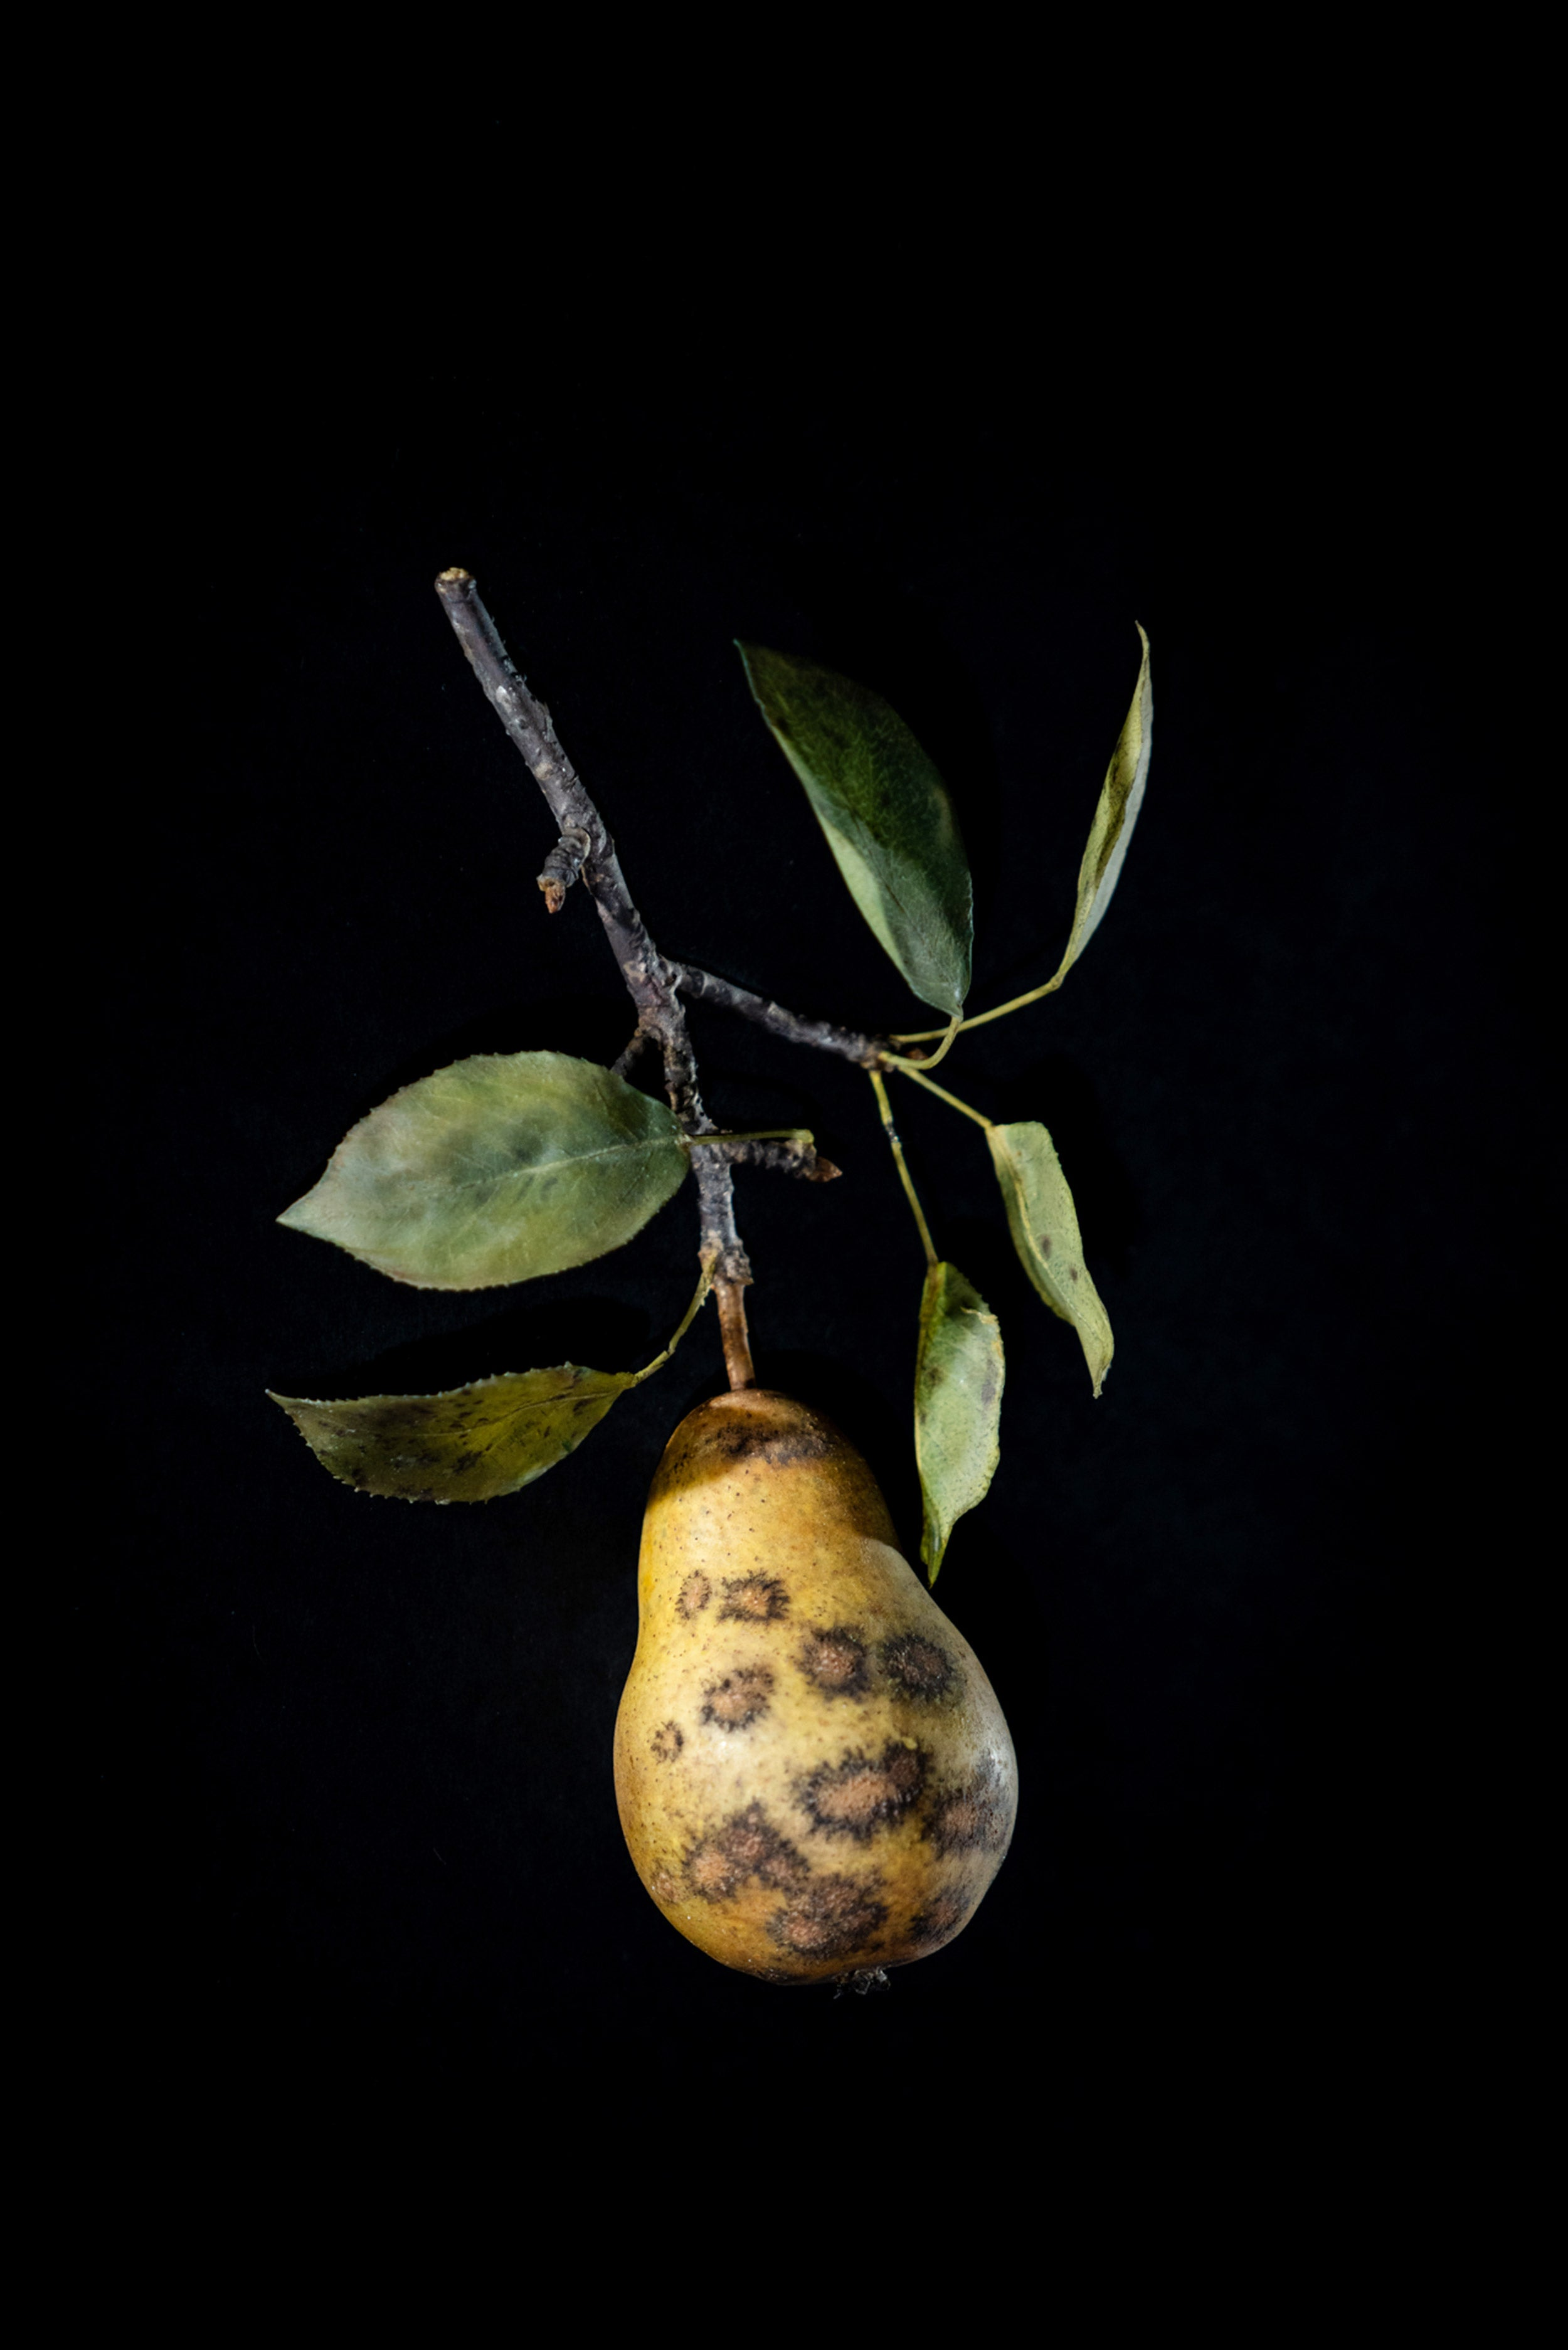 Glass fruit decaying pear